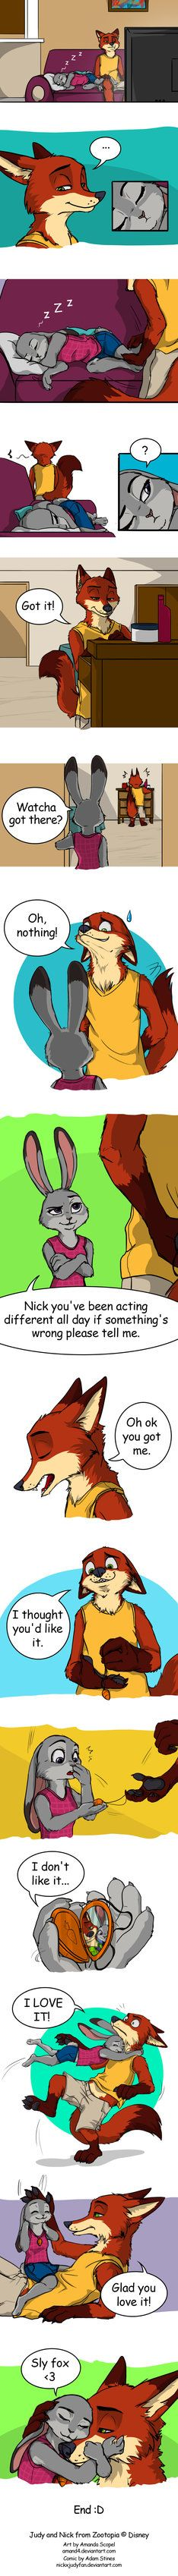 Nick and Judy - Zootopia by Amand4.deviantart.com on @DeviantArt